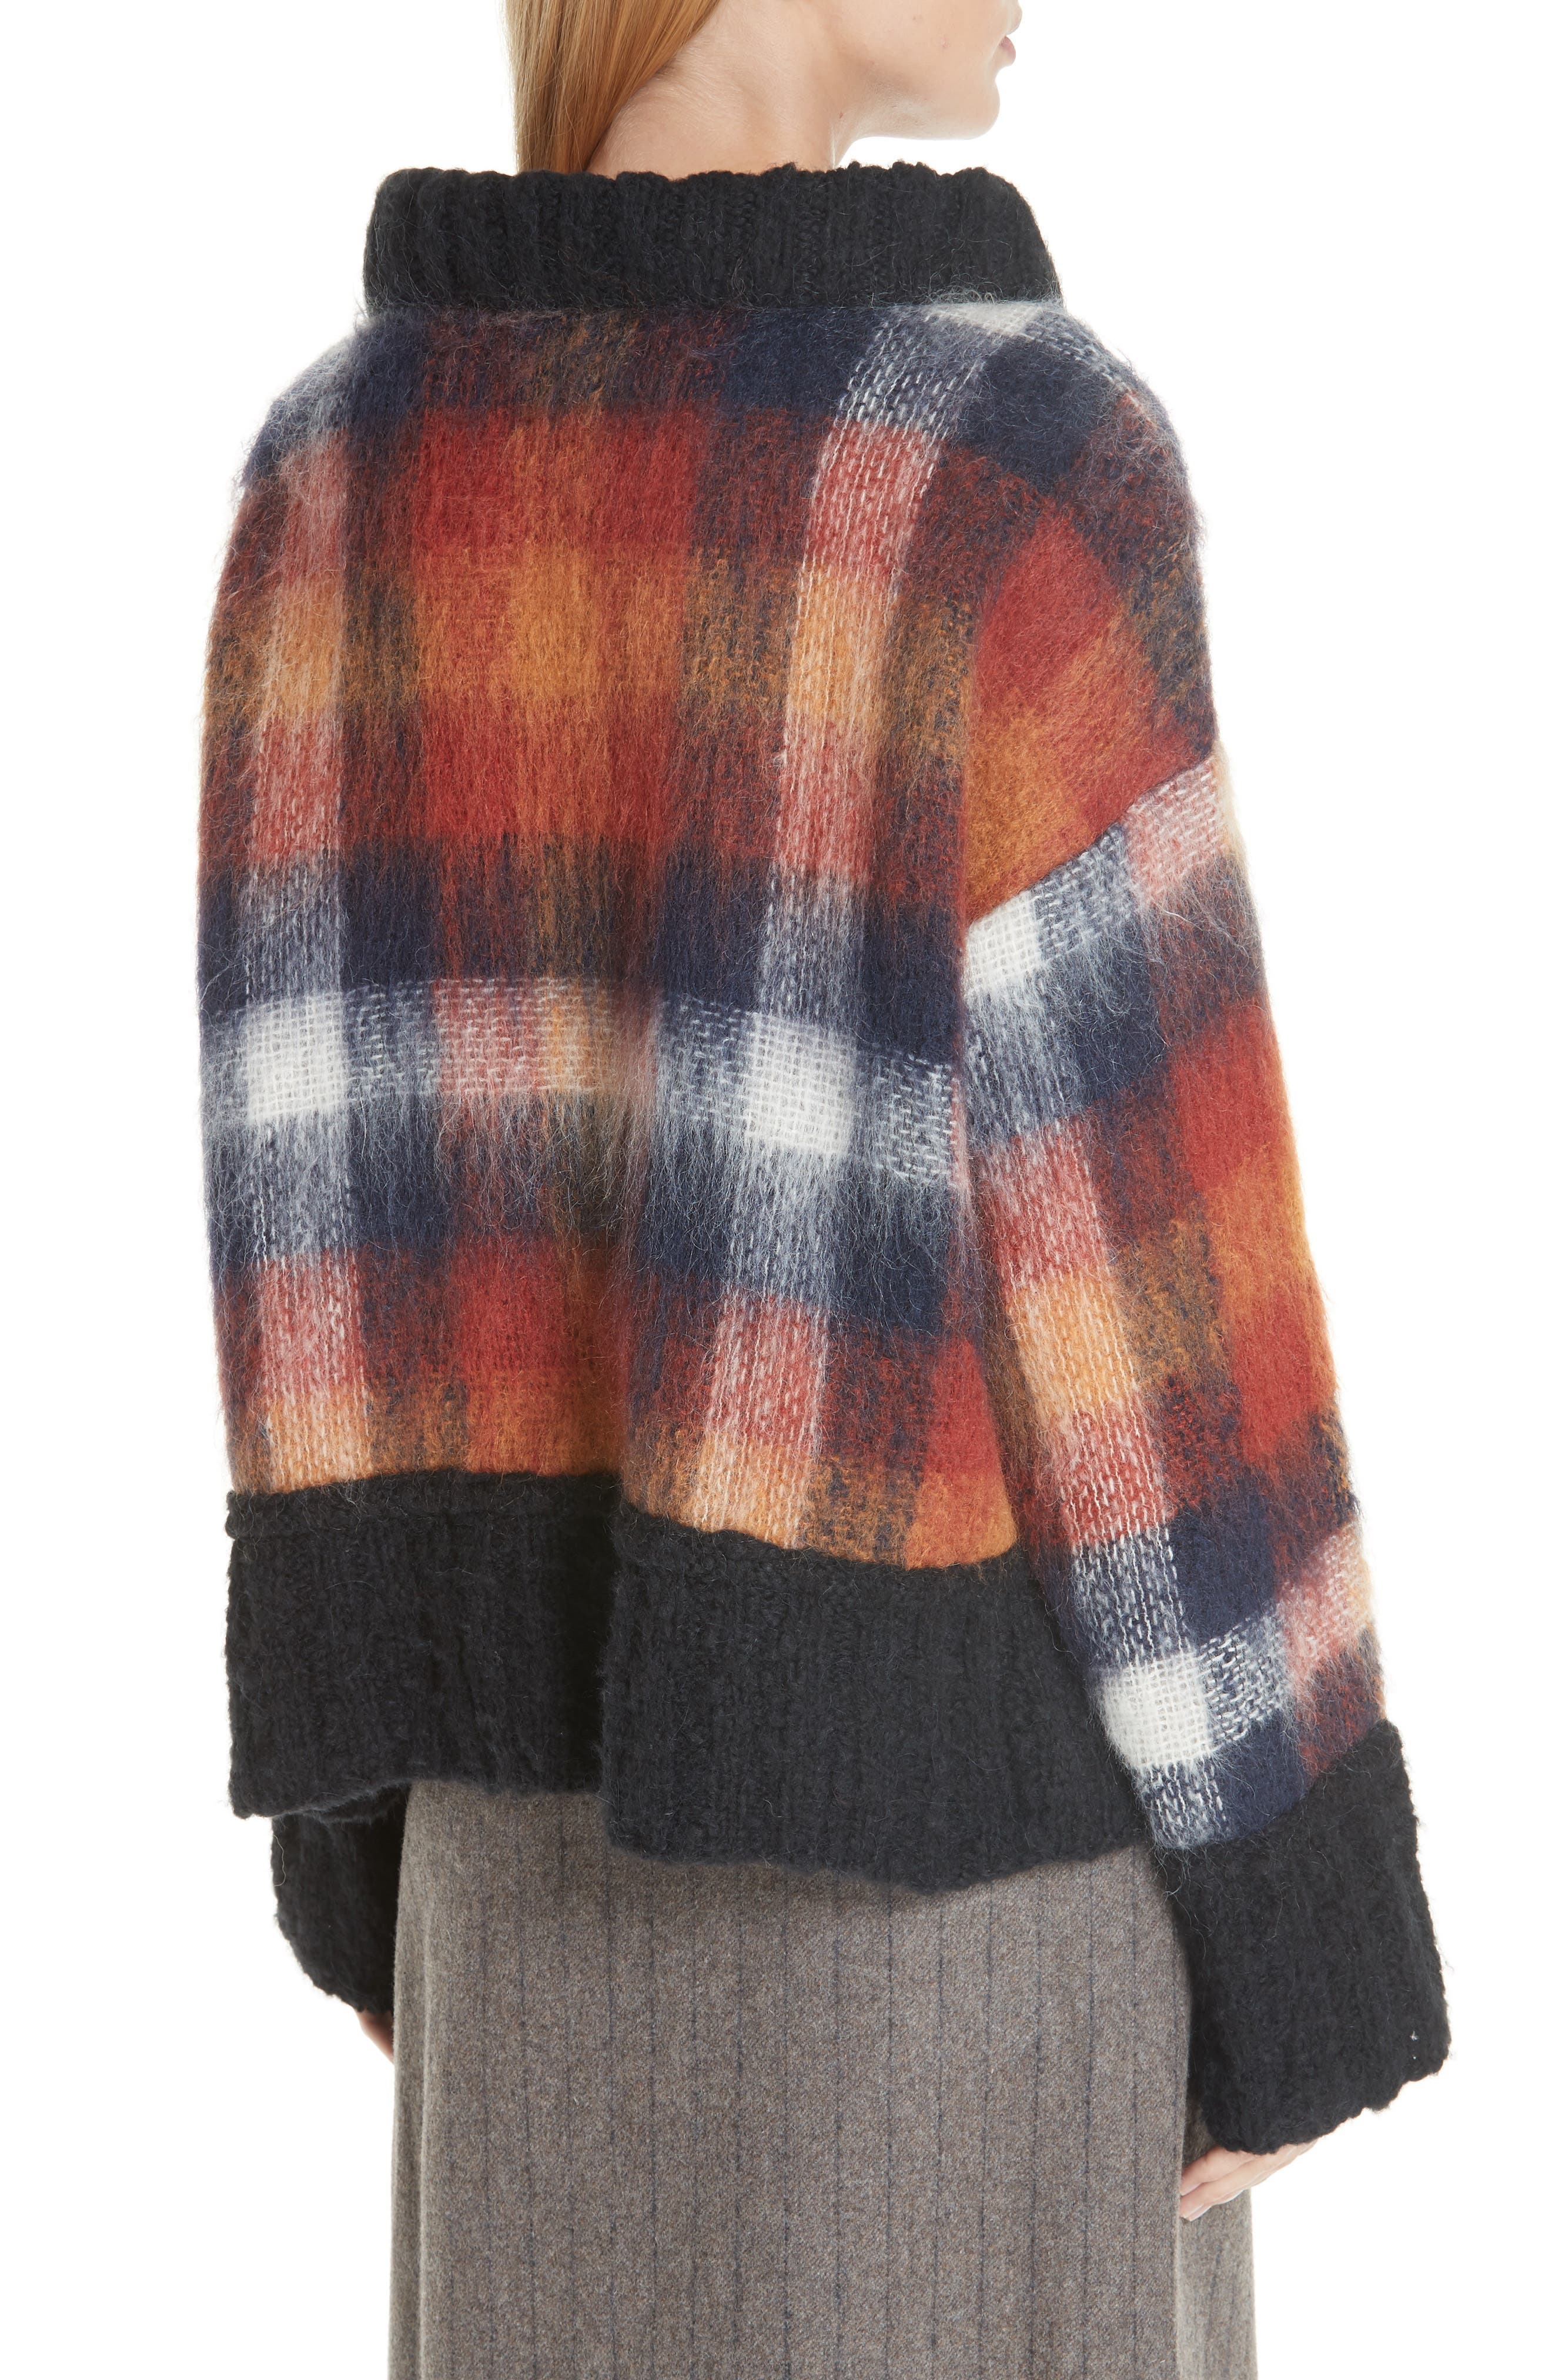 Maryam Mohair & Wool Blend Sweater,                             Alternate thumbnail 2, color,                             PLAID MULTI